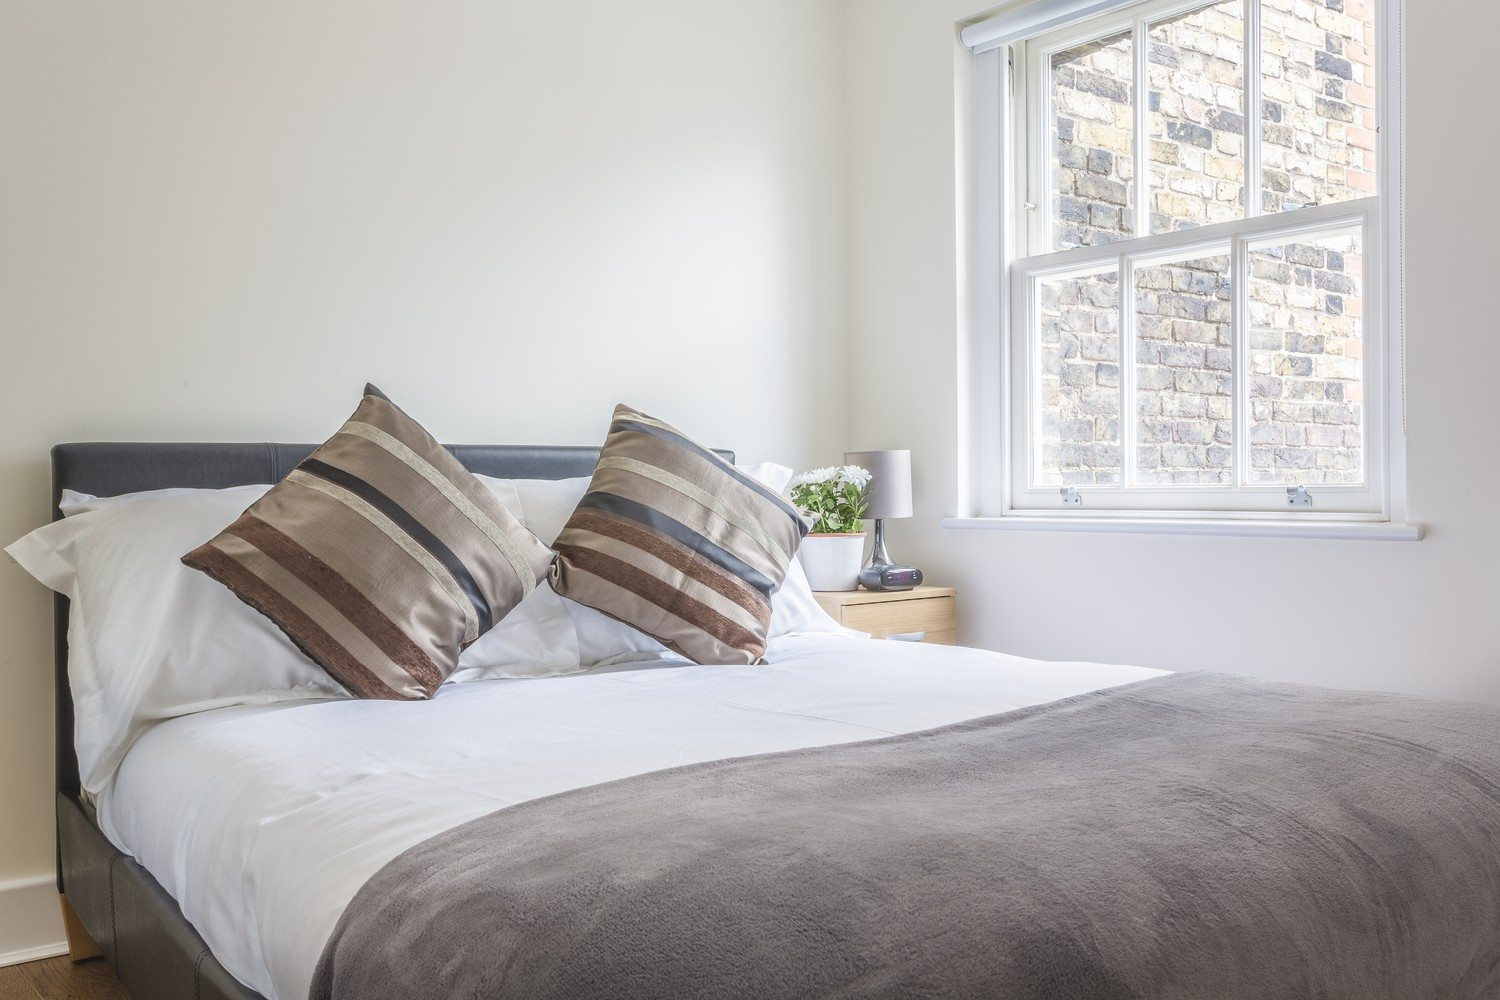 Liverpool Street Serviced Accommodation Artillery Lane Apartments Bedroom